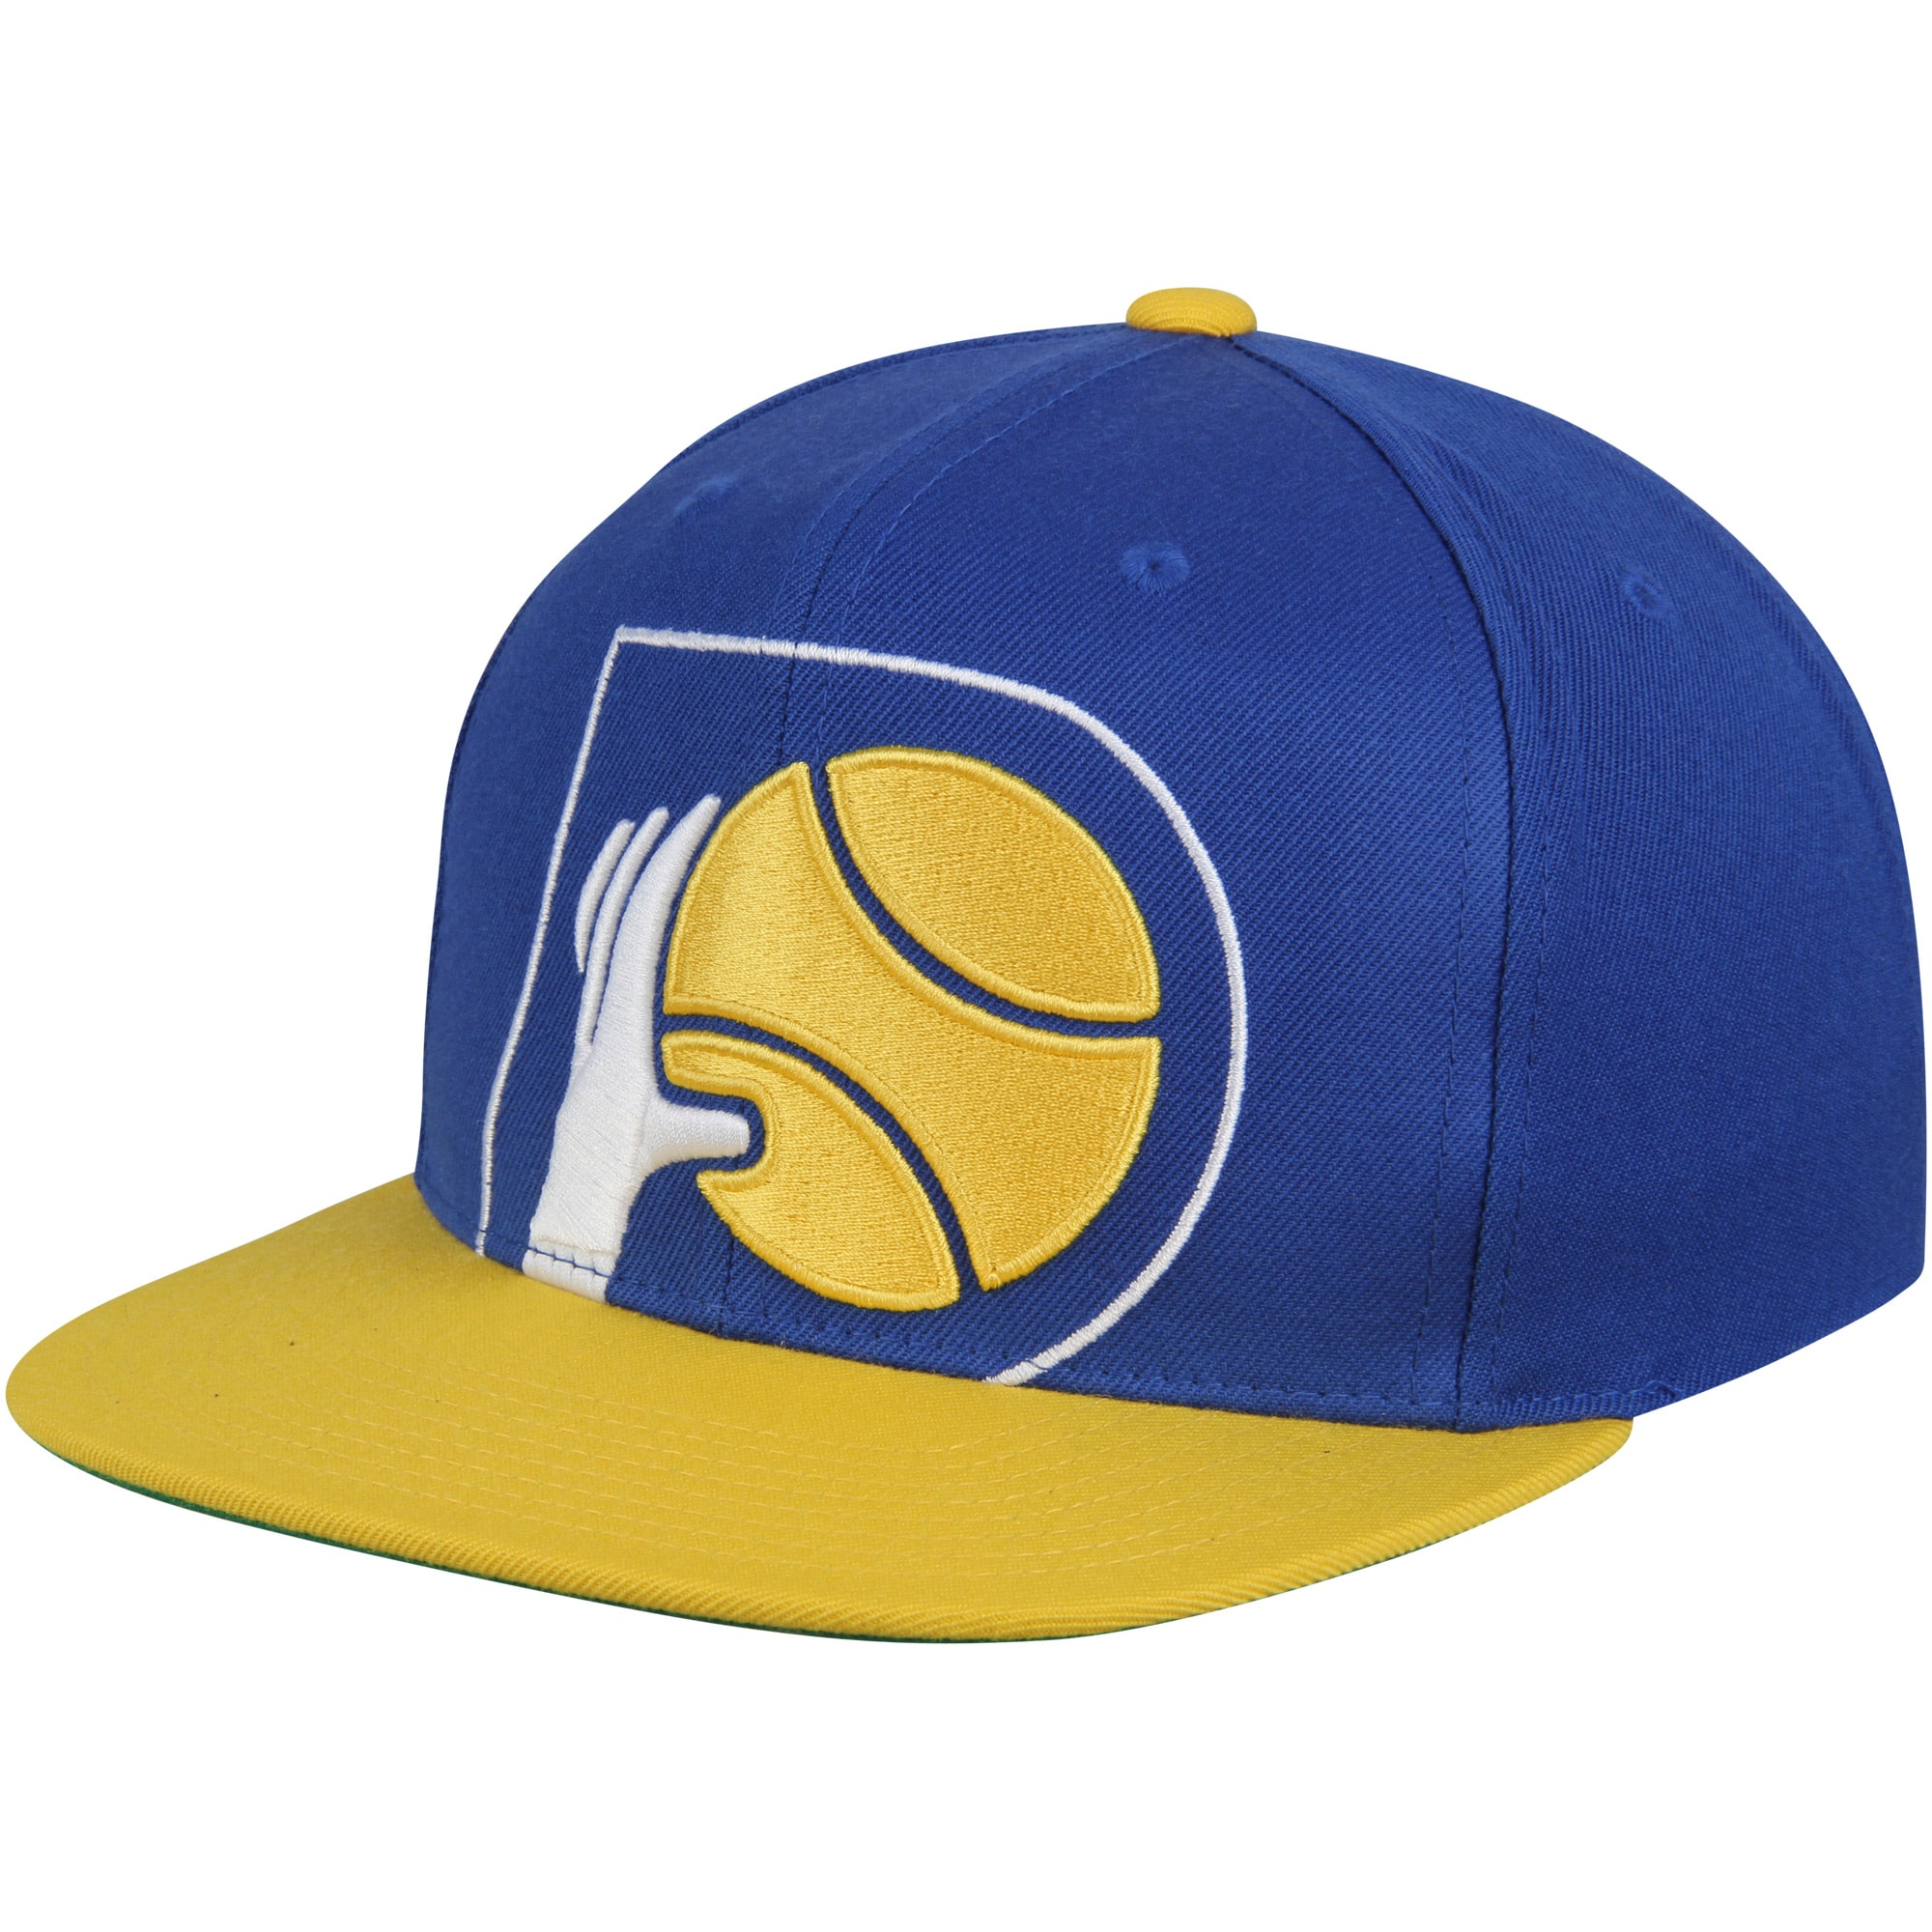 Indiana Pacers Mitchell & Ness Hardwood Classics Cropped XL Logo Snapback Adjustable Hat - Navy/Gold